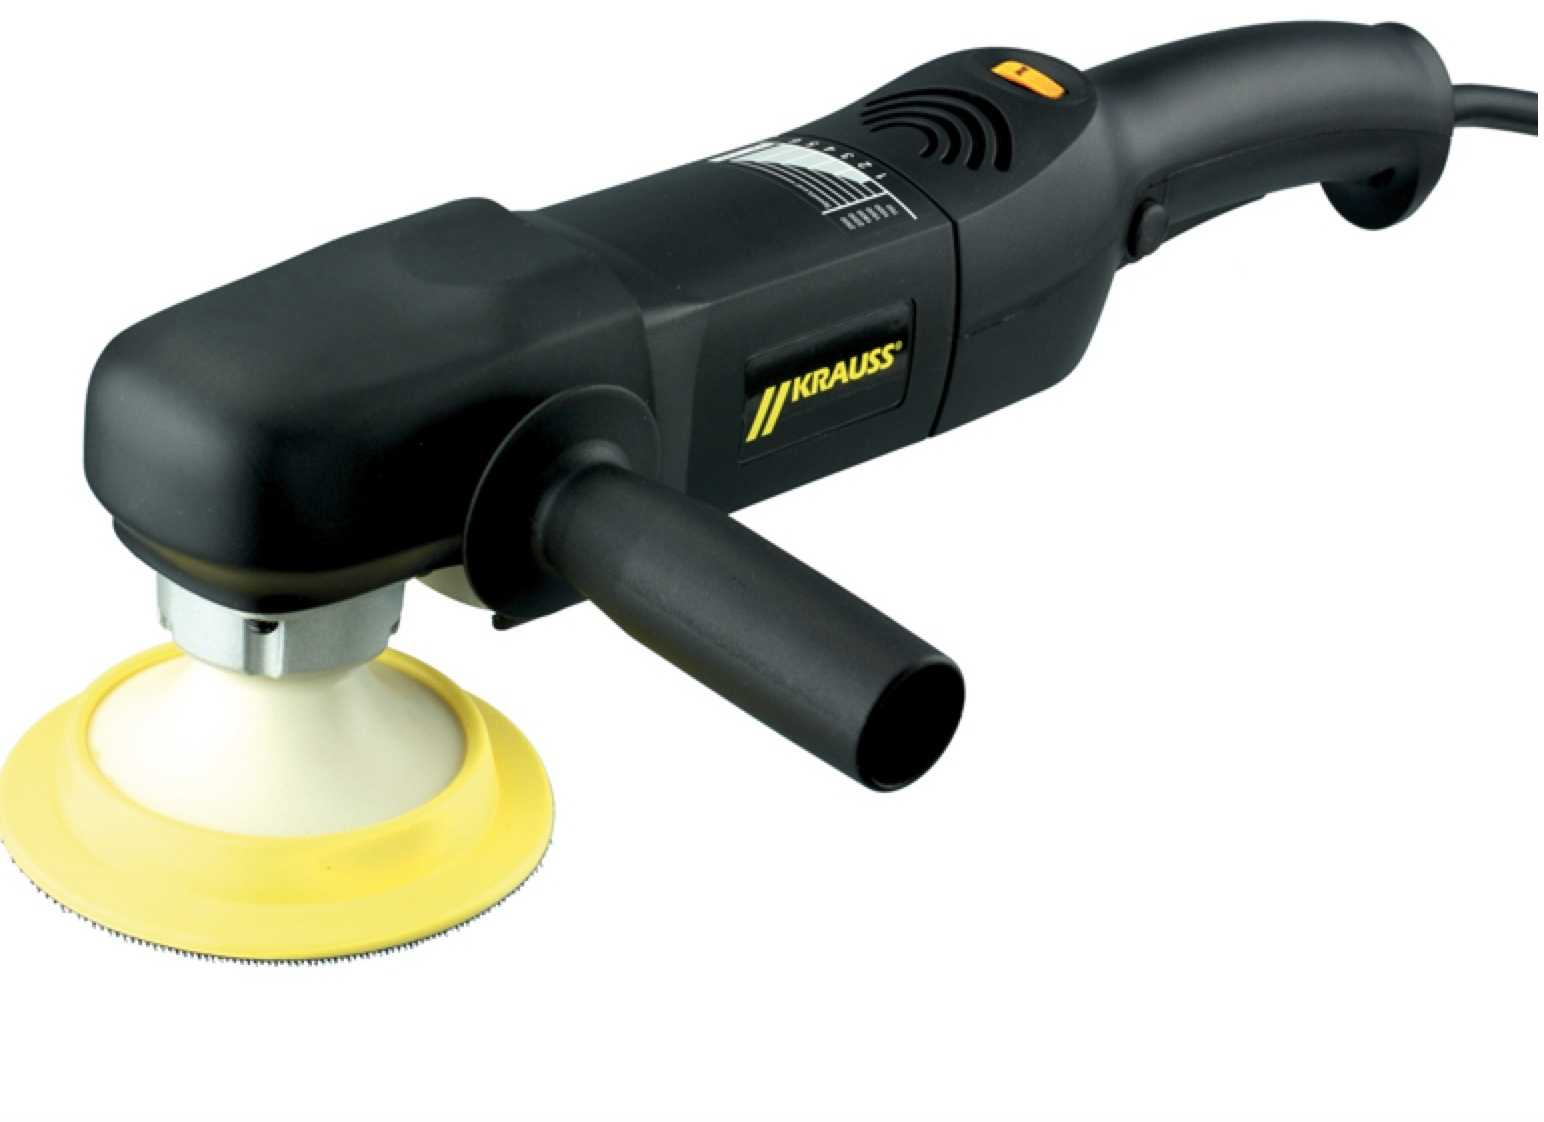 NO SCRATCH 1200W ROTARY SUPERPOLISHER